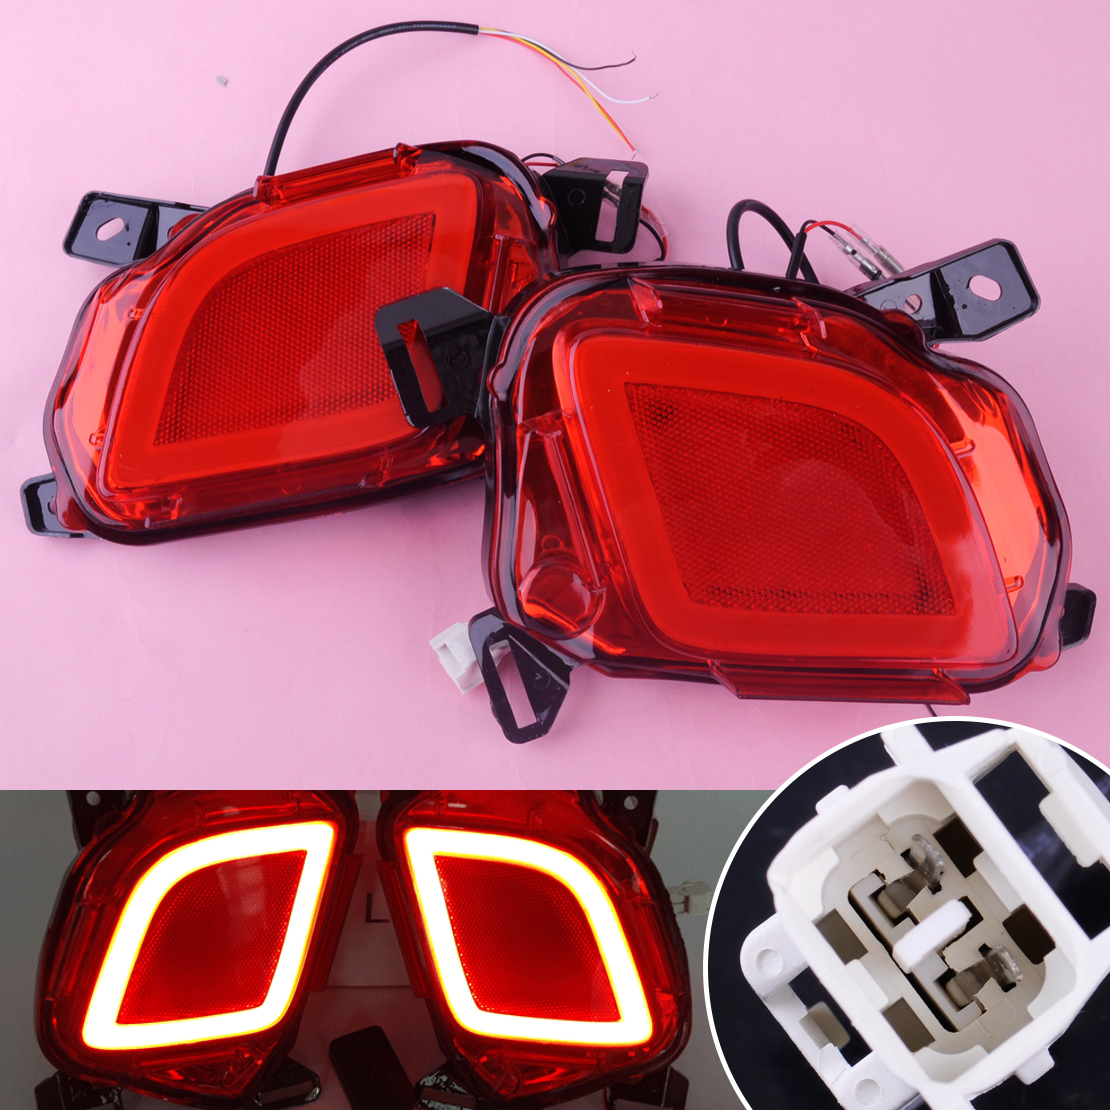 DWCX 2pcs Car 12V LED Rear Bumper Brake Tail Lights Turn Signal Lamps DRL 2 Pin Fit For Toyota Highlander 2015 2016 2017